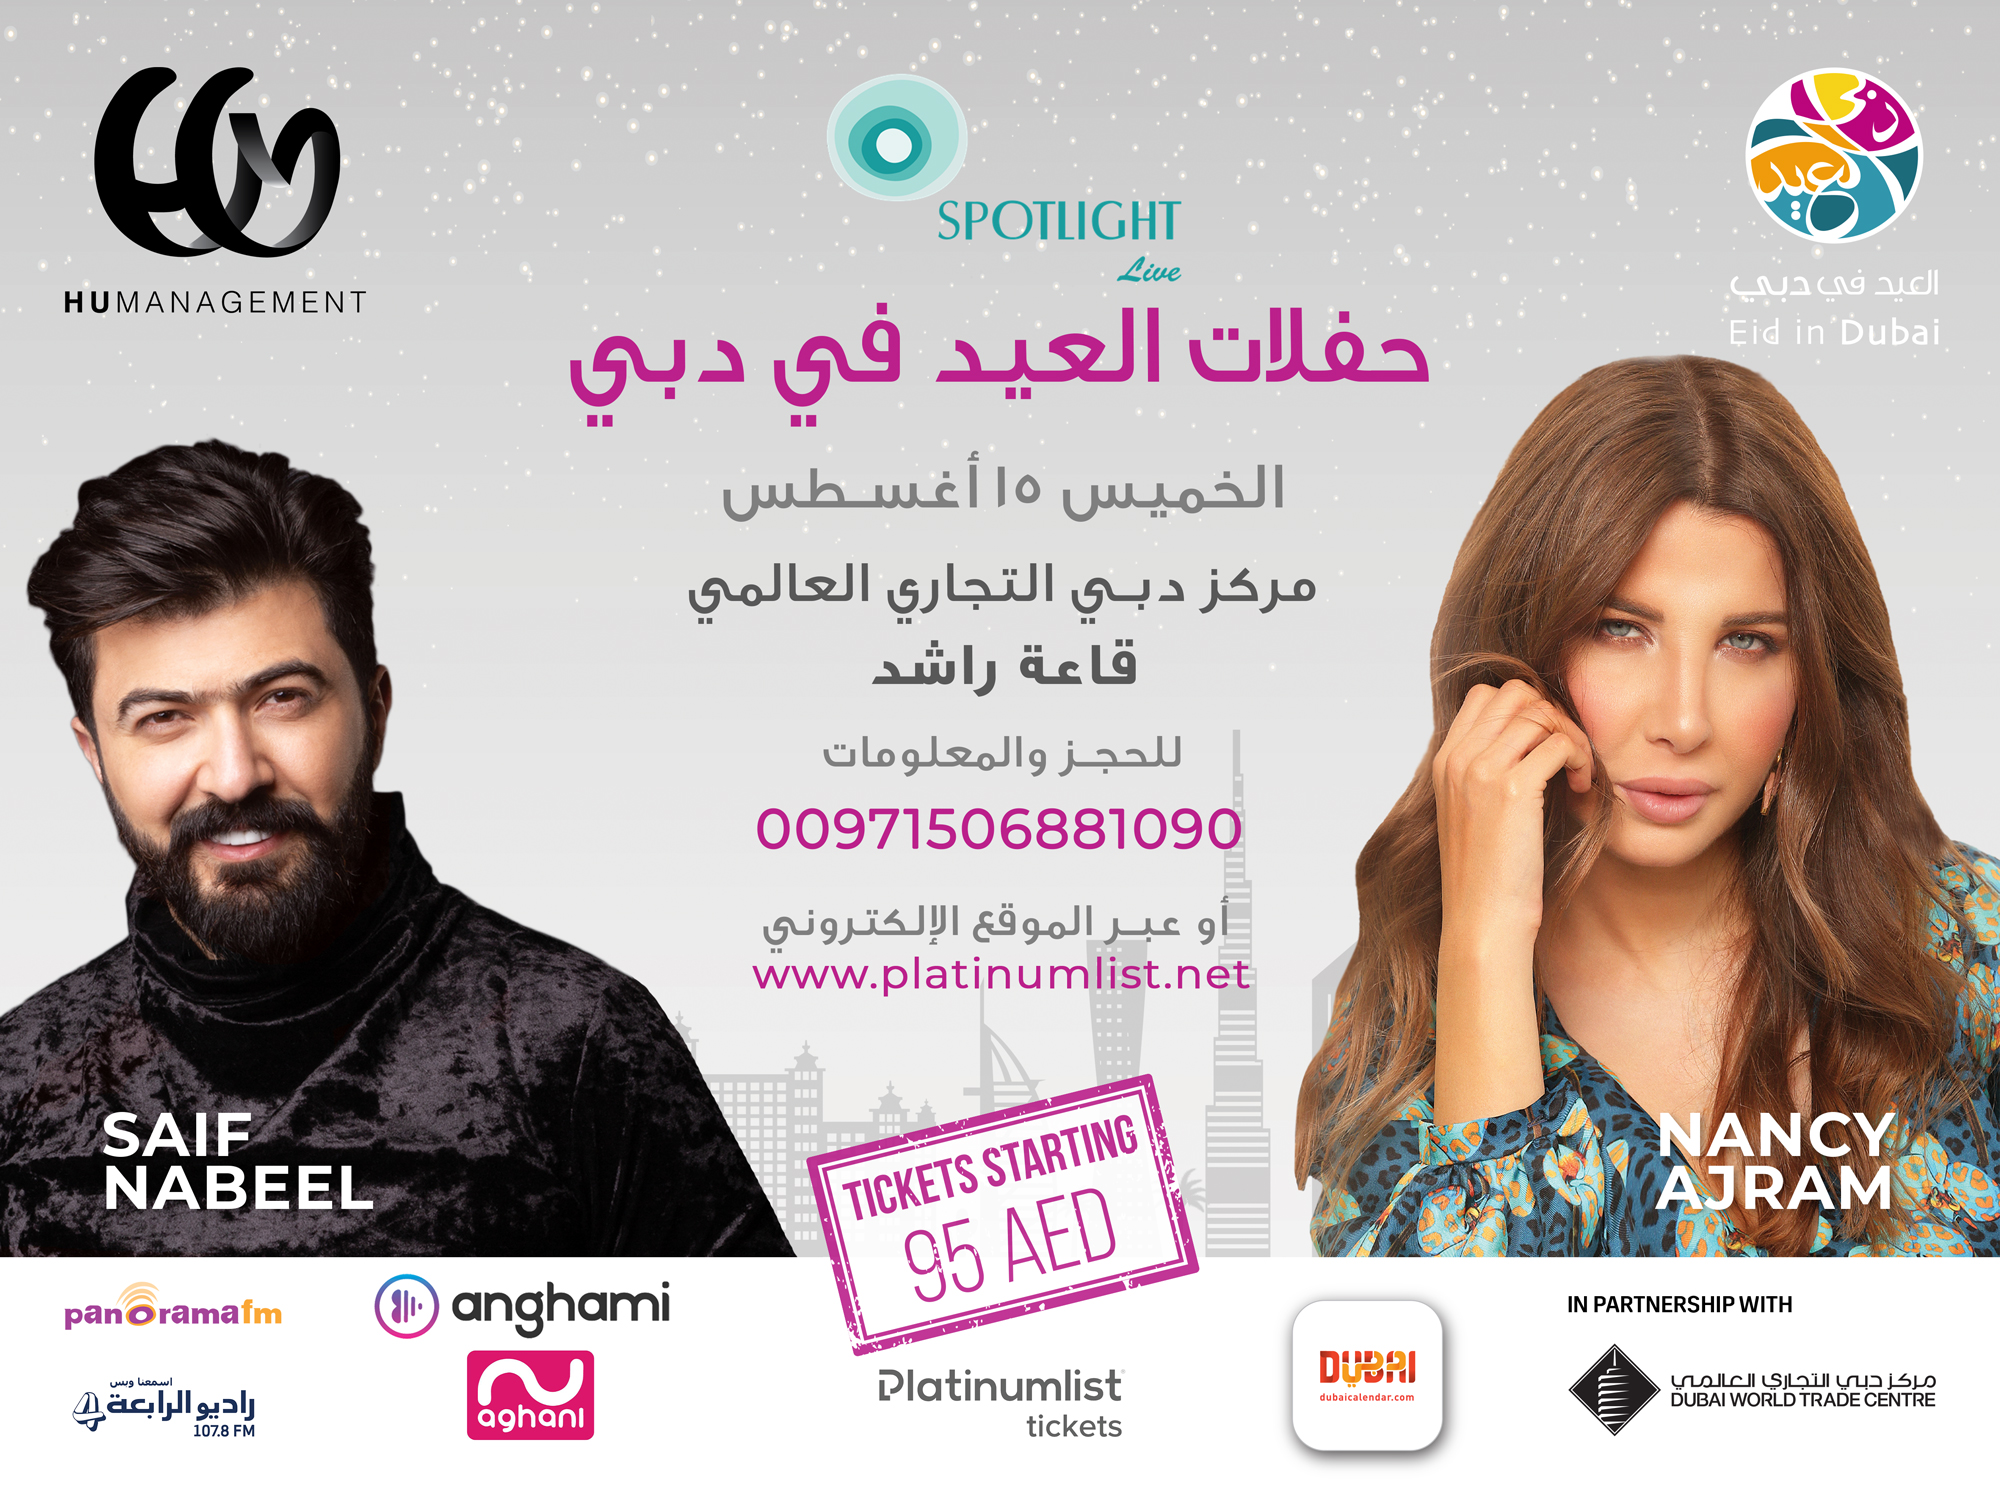 Nancy Ajram and Saif Nabeel in Dubai